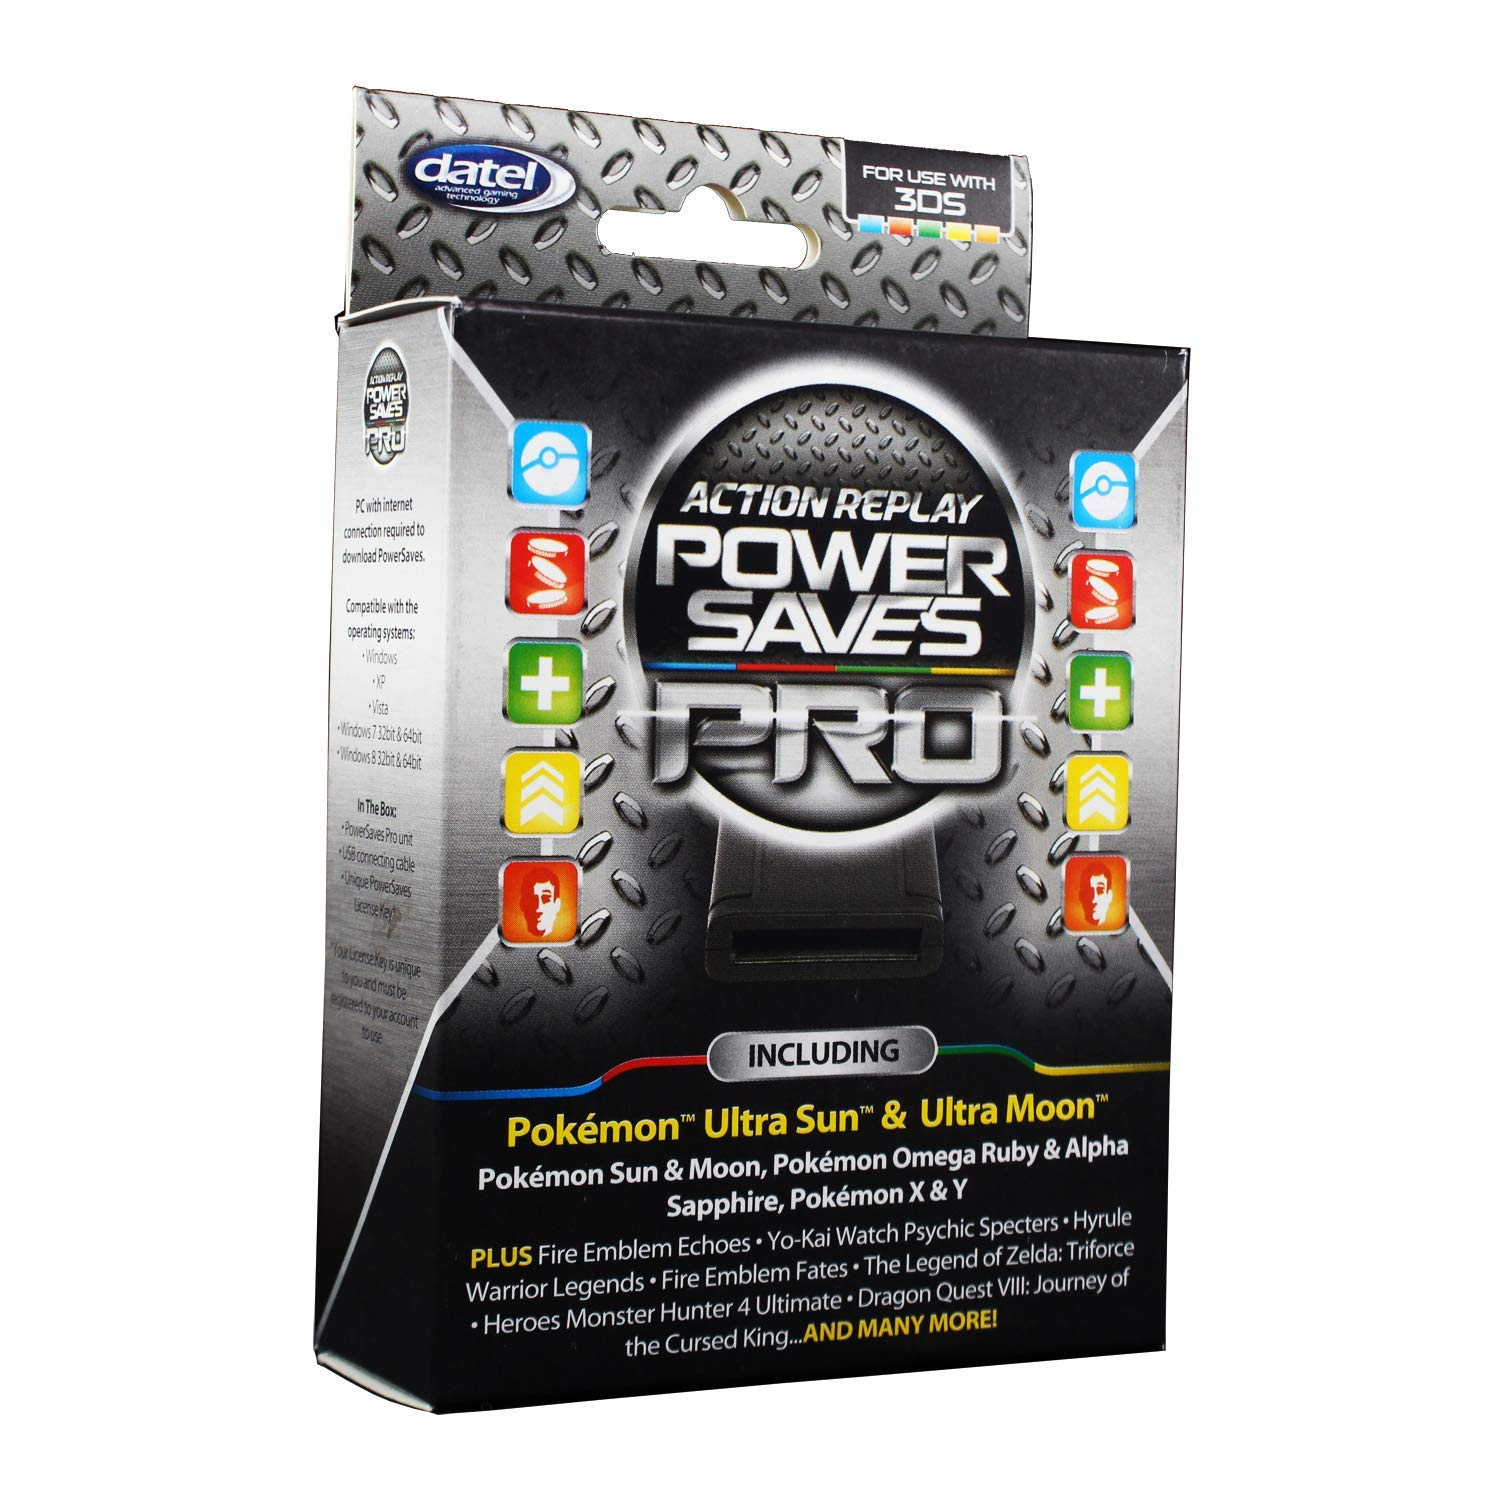 Datel Action Replay - Power Saves Pro for Nintendo 3DS